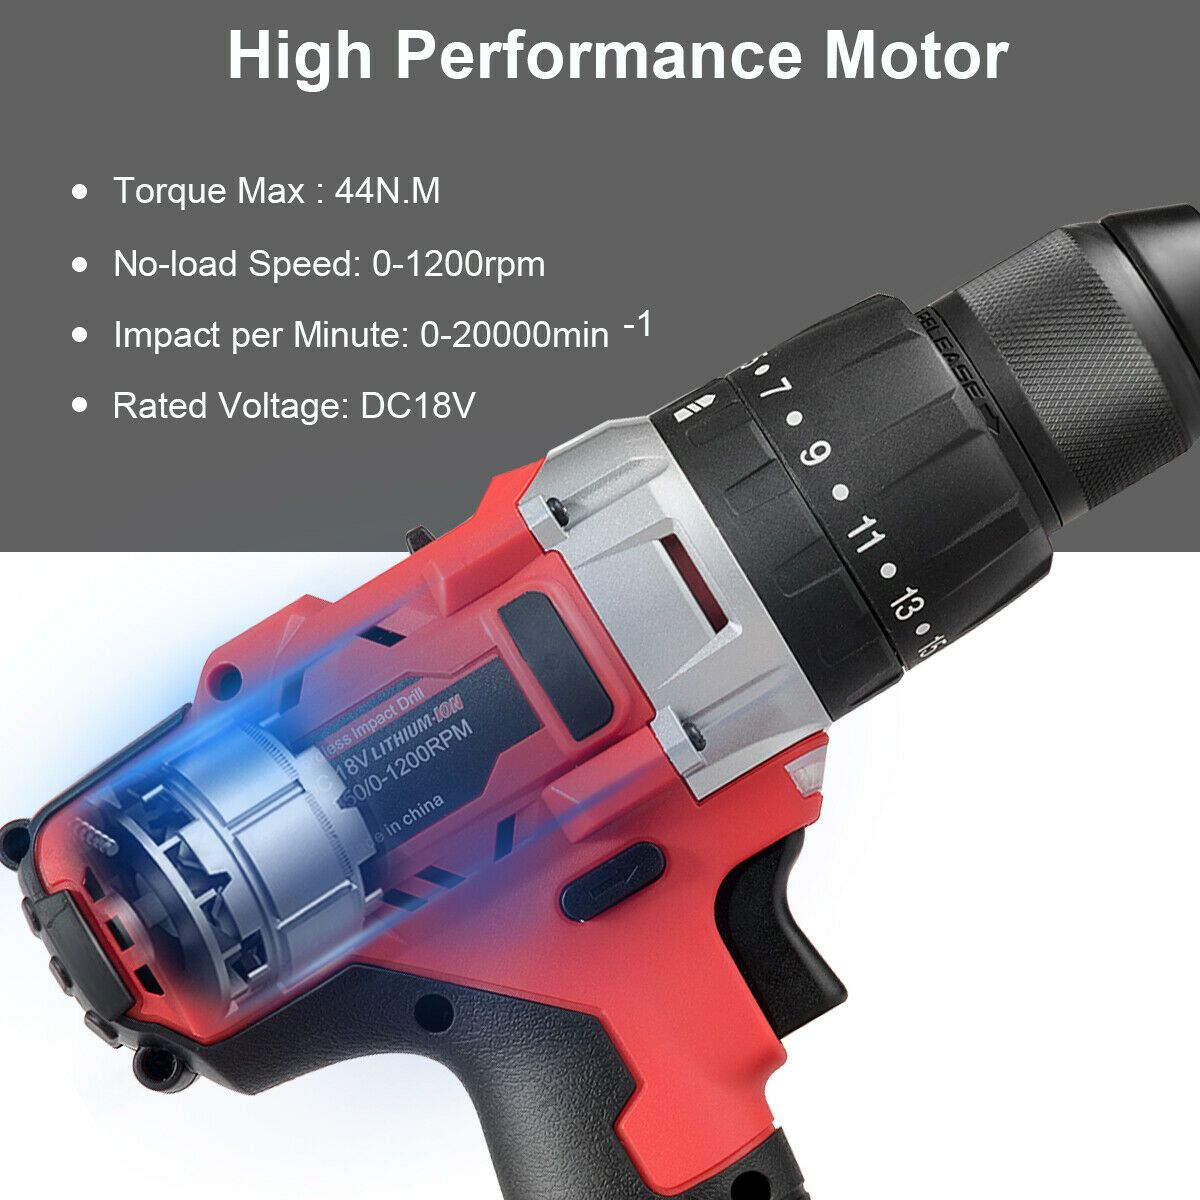 18v Cordless Drill Driver Impact Tool Kit With Led Light Cordless Drill 18v Cordless Drill Drill Driver